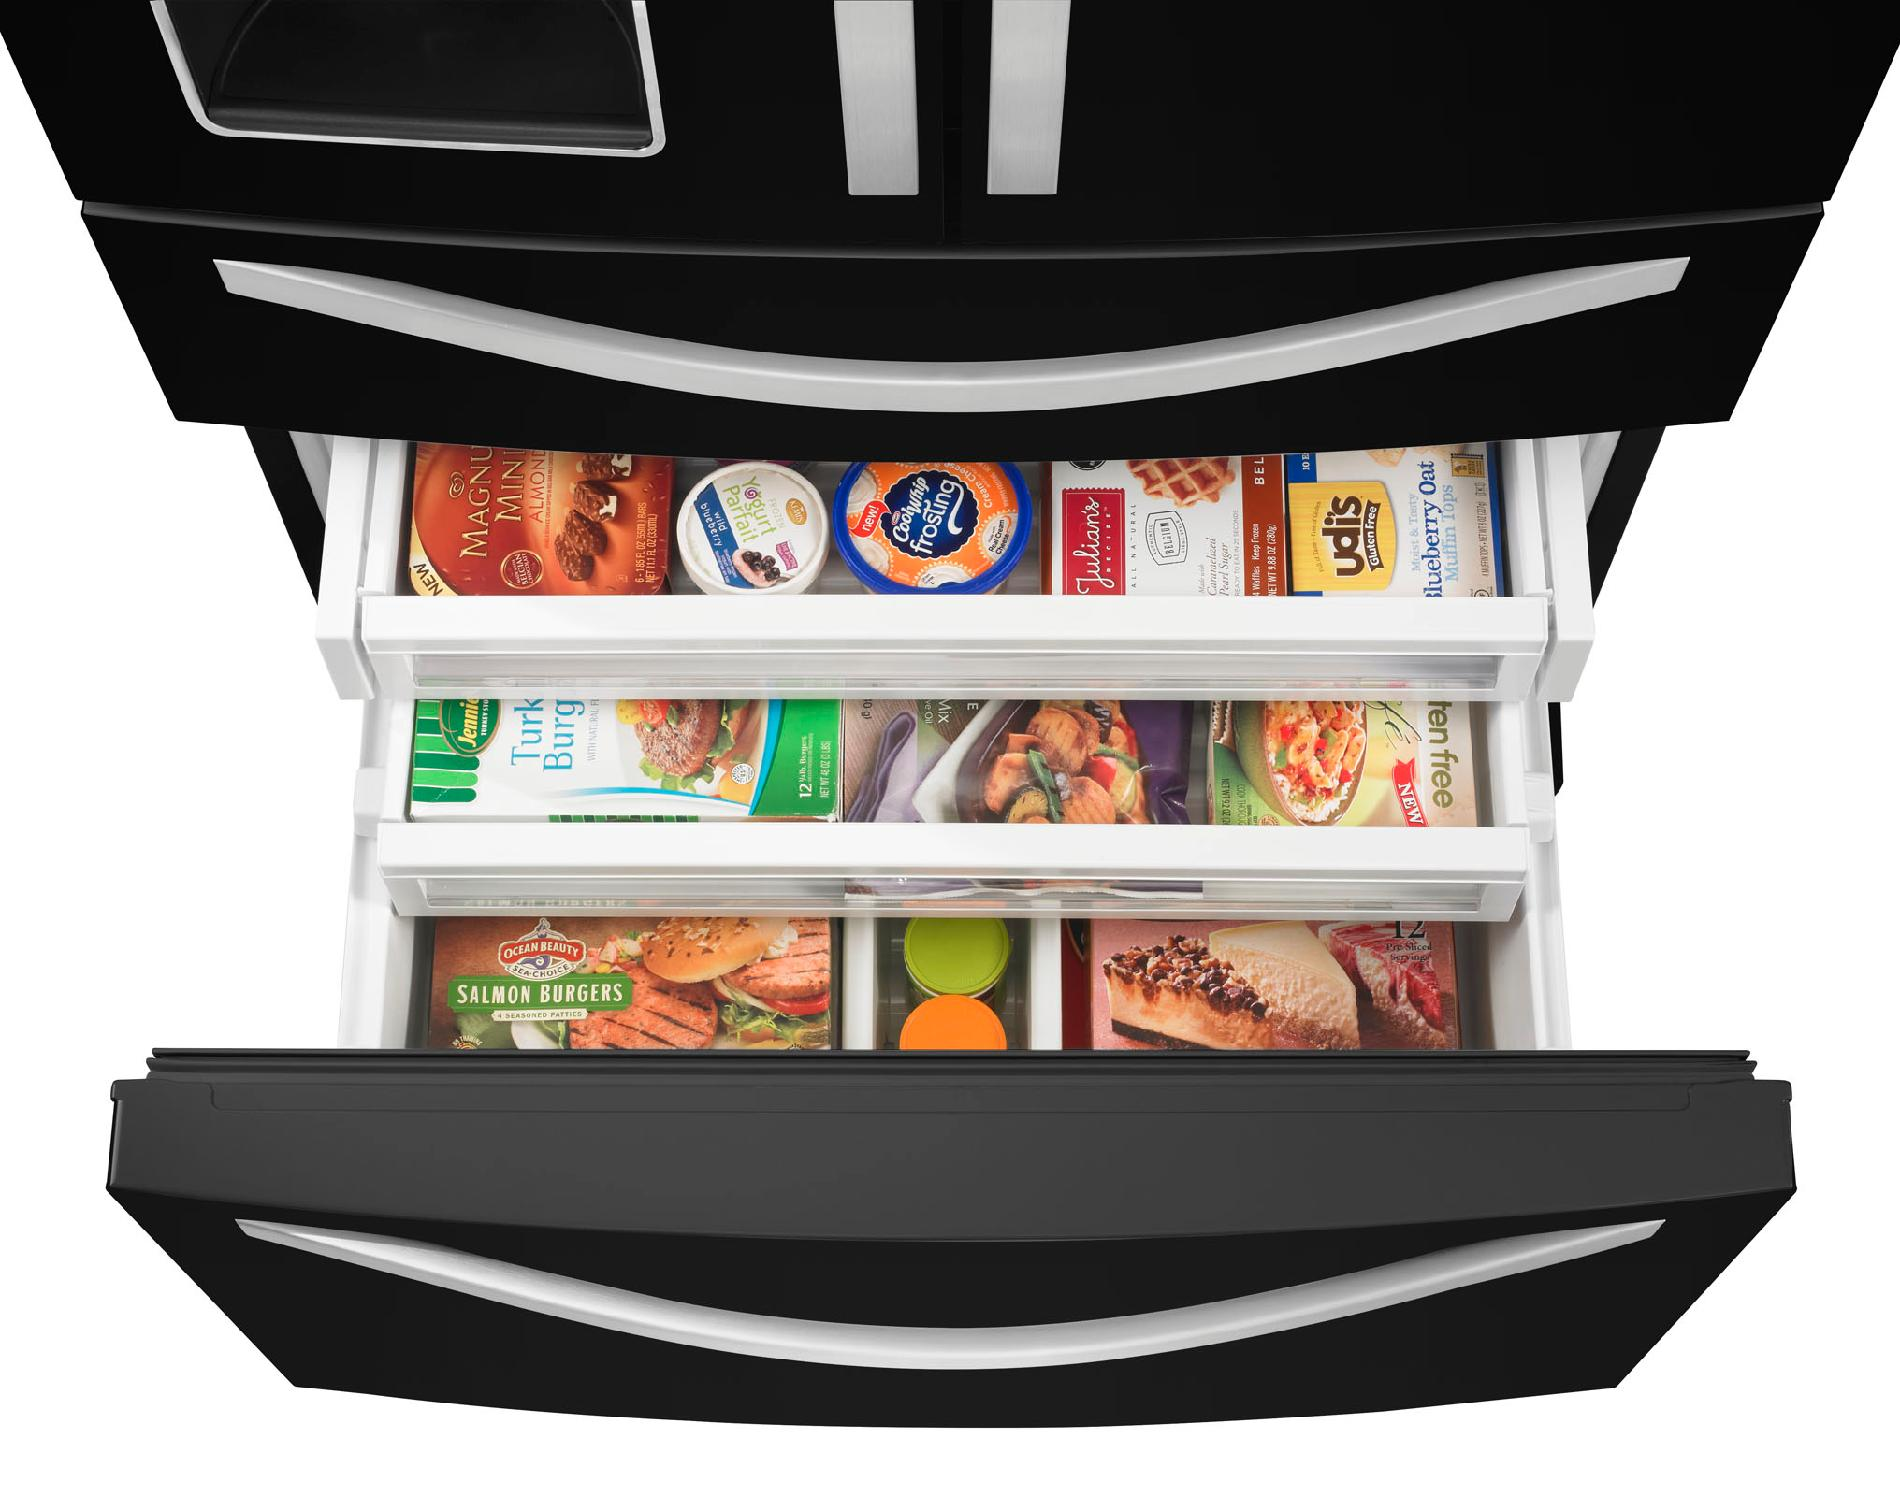 Whirlpool 28.1 cu. ft. French Door Refrigerator w/ Most Flexible Storage - Black Ice